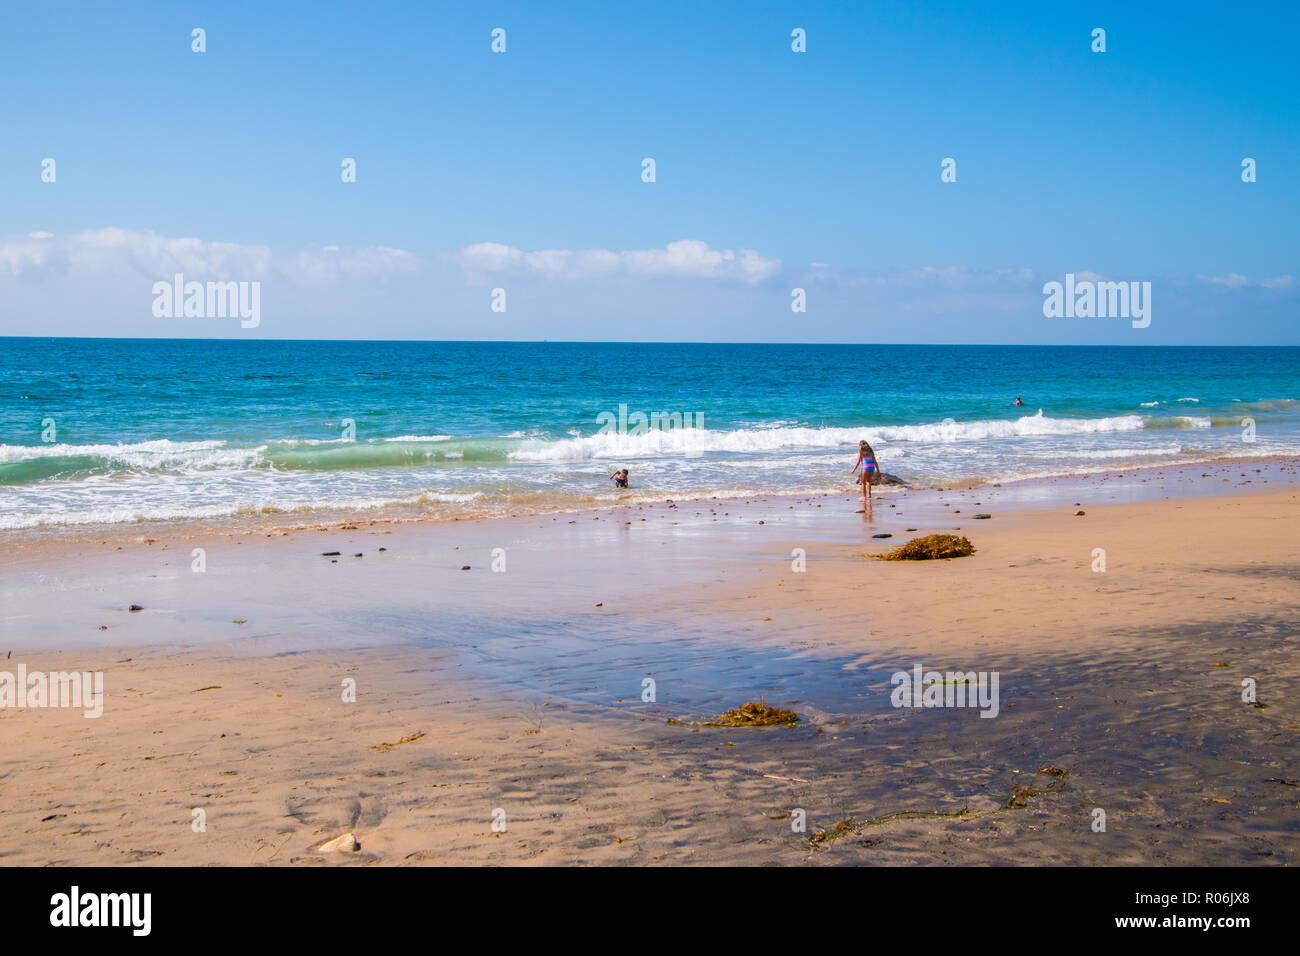 Crystal Cove, California - October 7, 2018: Beautiful flat beach with two children playing in the blue ocean as seen on this date - Stock Image